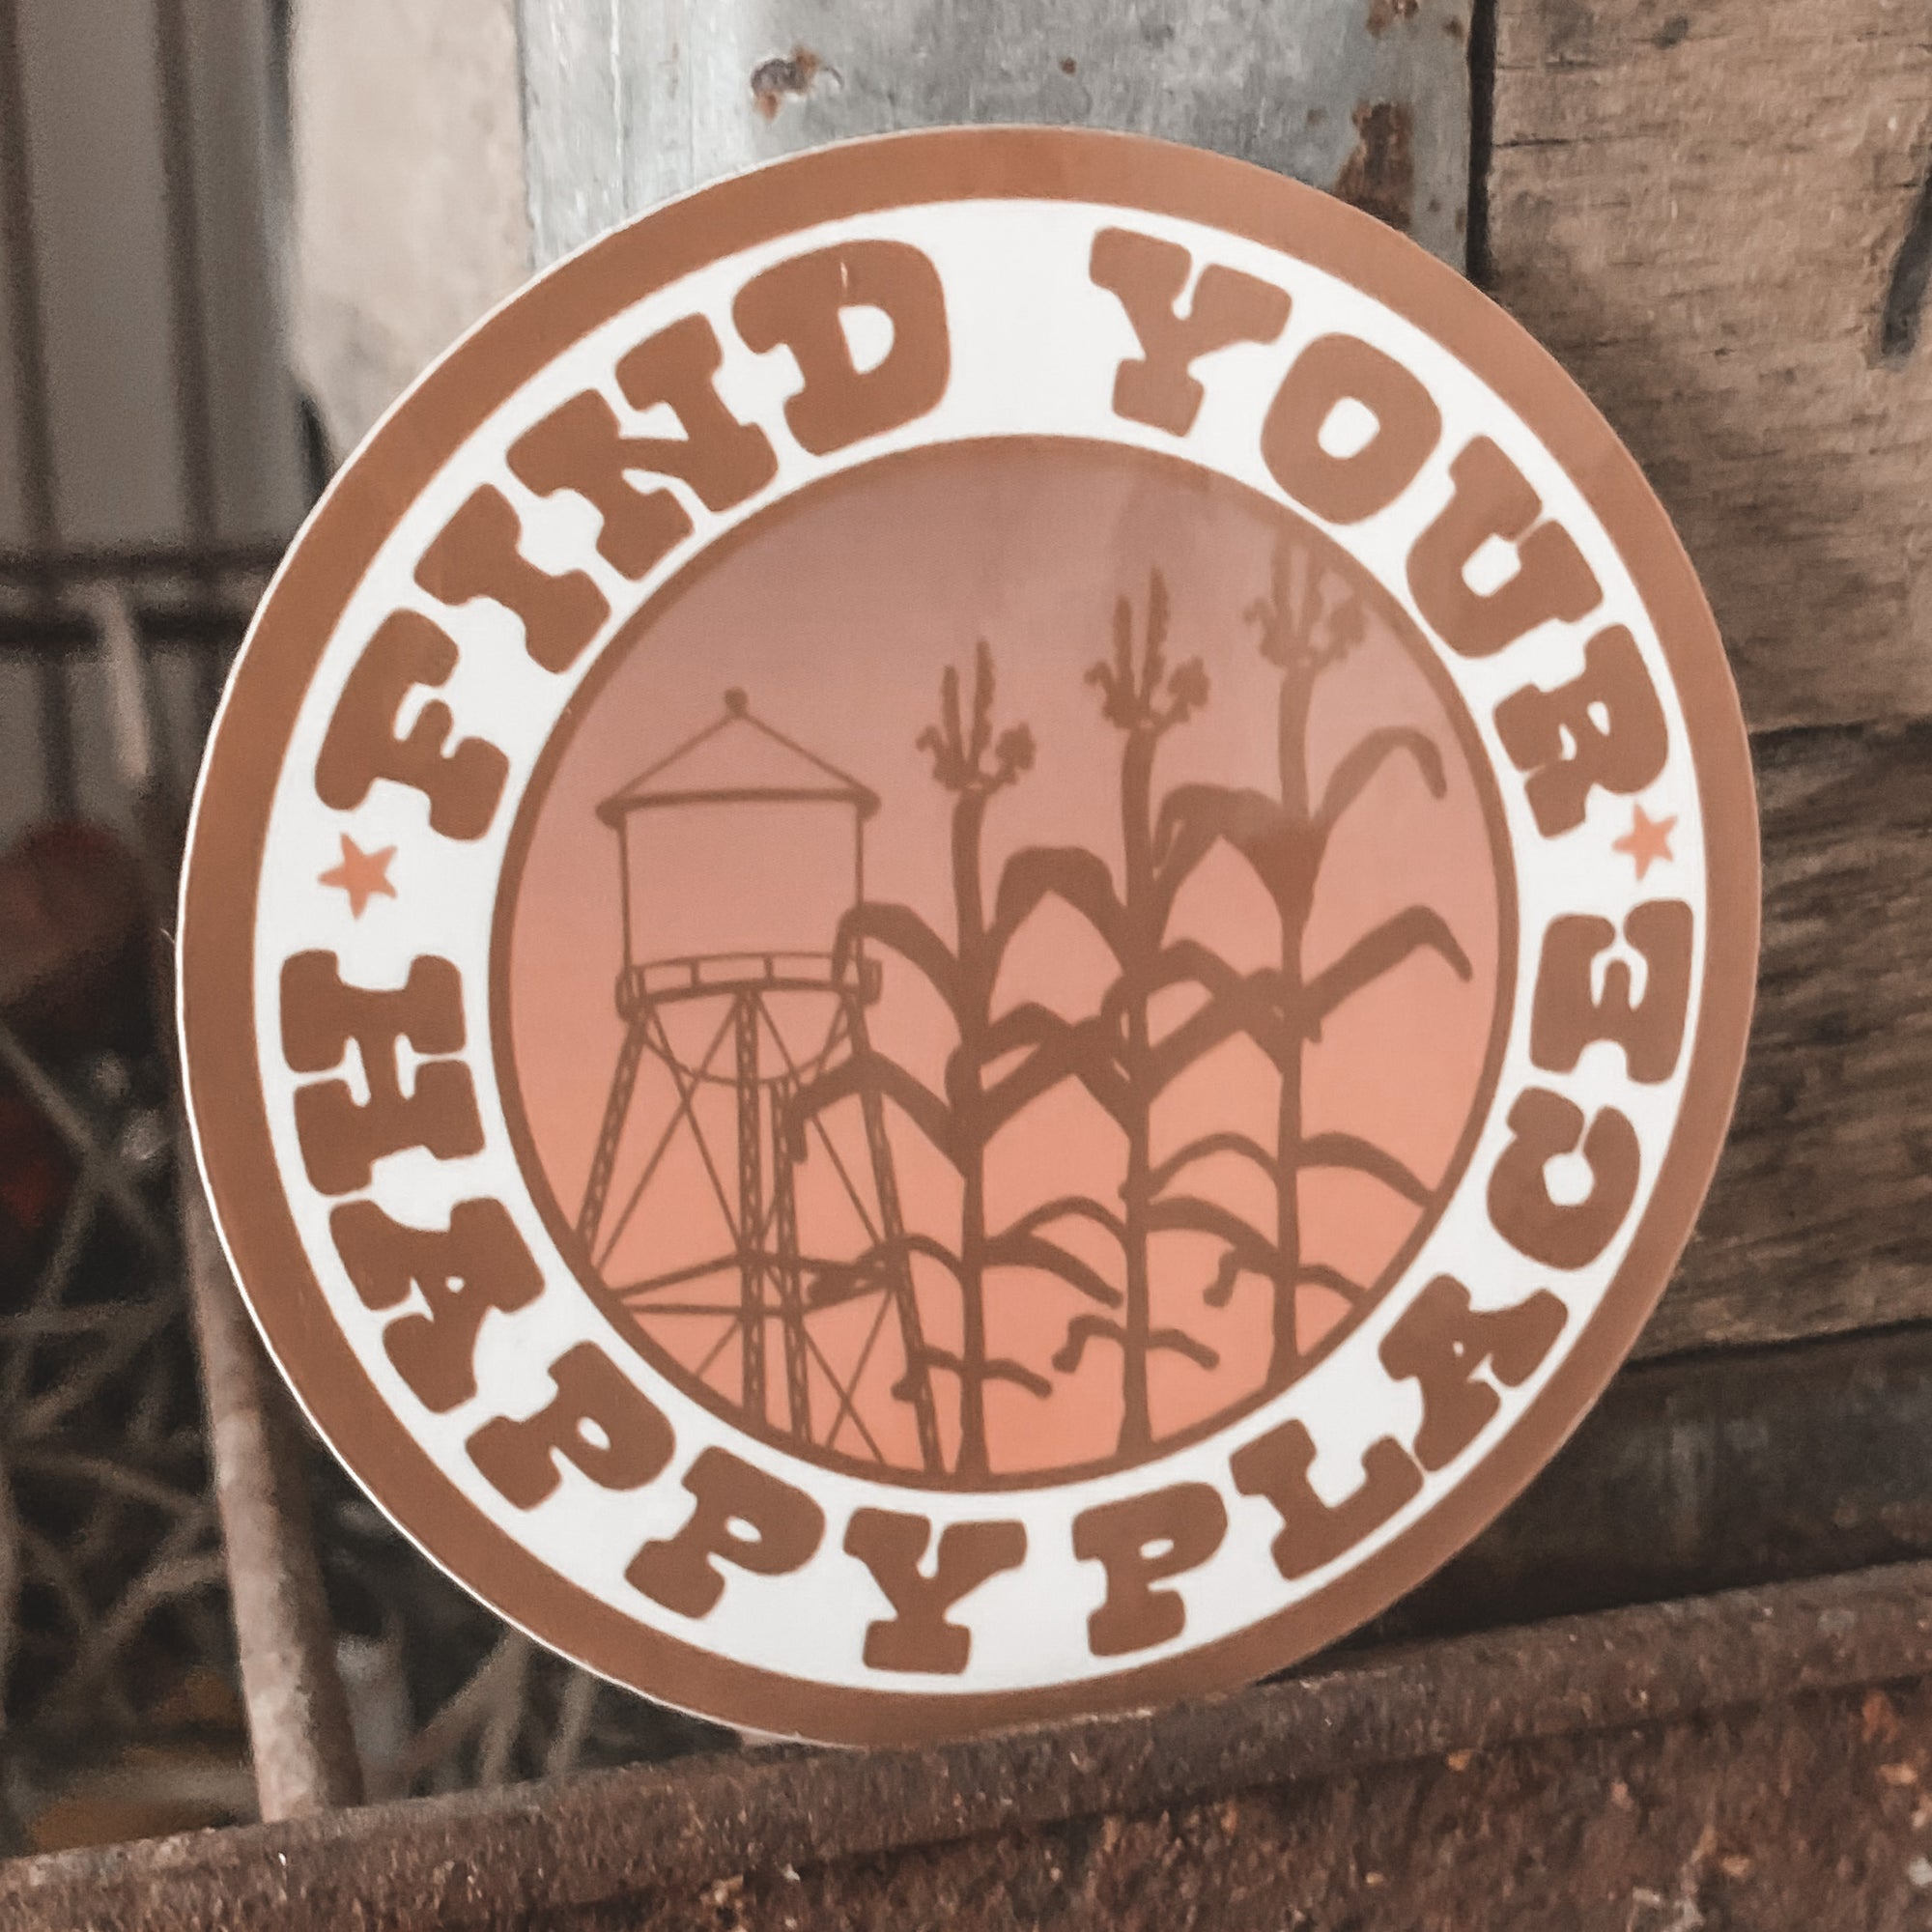 Find Your Happy Place Round Sticker - Rosebud's Tees